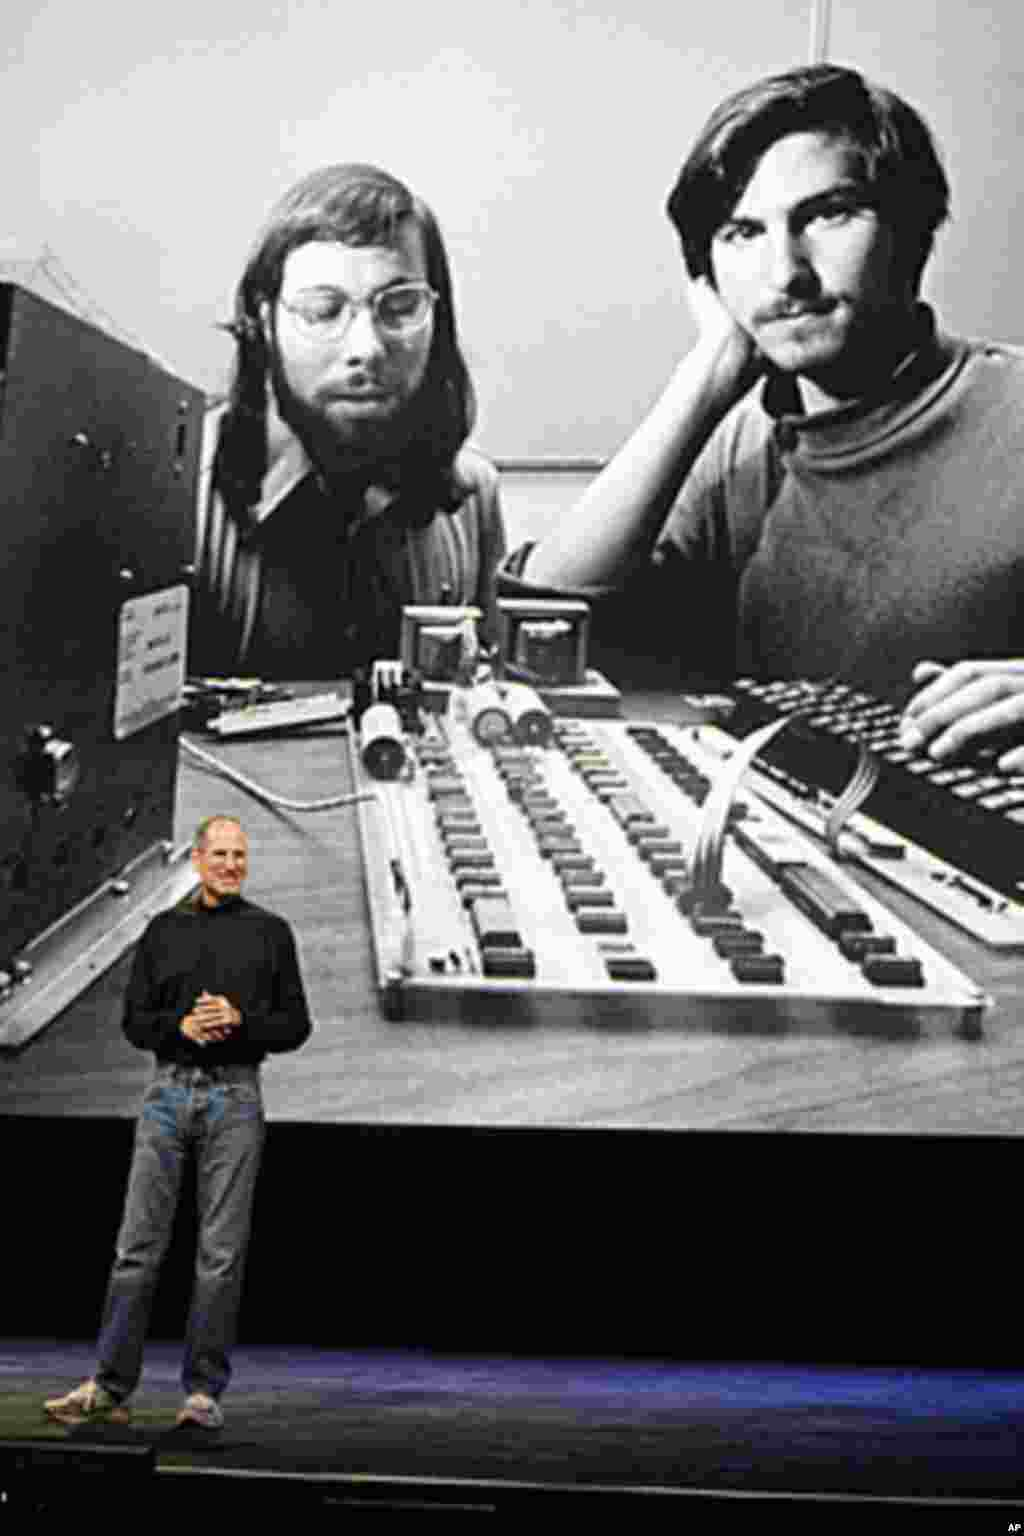 In this file photo taken January 27, 2010, Steve Jobs stands in front of a photo of himself, right, and Steve Wozniak, left, during an Apple event in San Francisco. (AP)